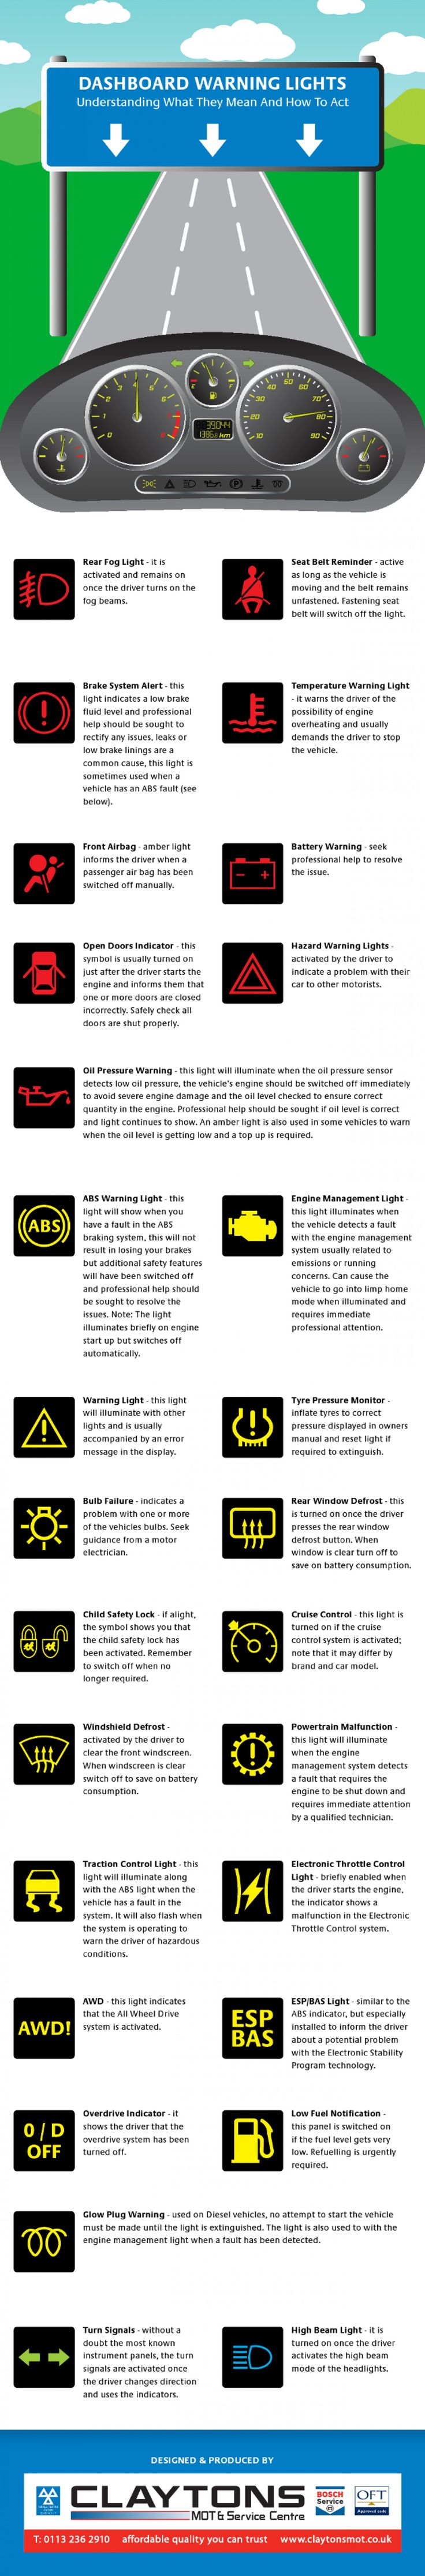 Car Dashboard Warning Lights - Understanding What They Mean & How To Act  ~ via  http://visual.ly/car-dashboard-warning-lights-understanding-what-they-mean-how-act#sthash.PtrcNeMw.dpuf